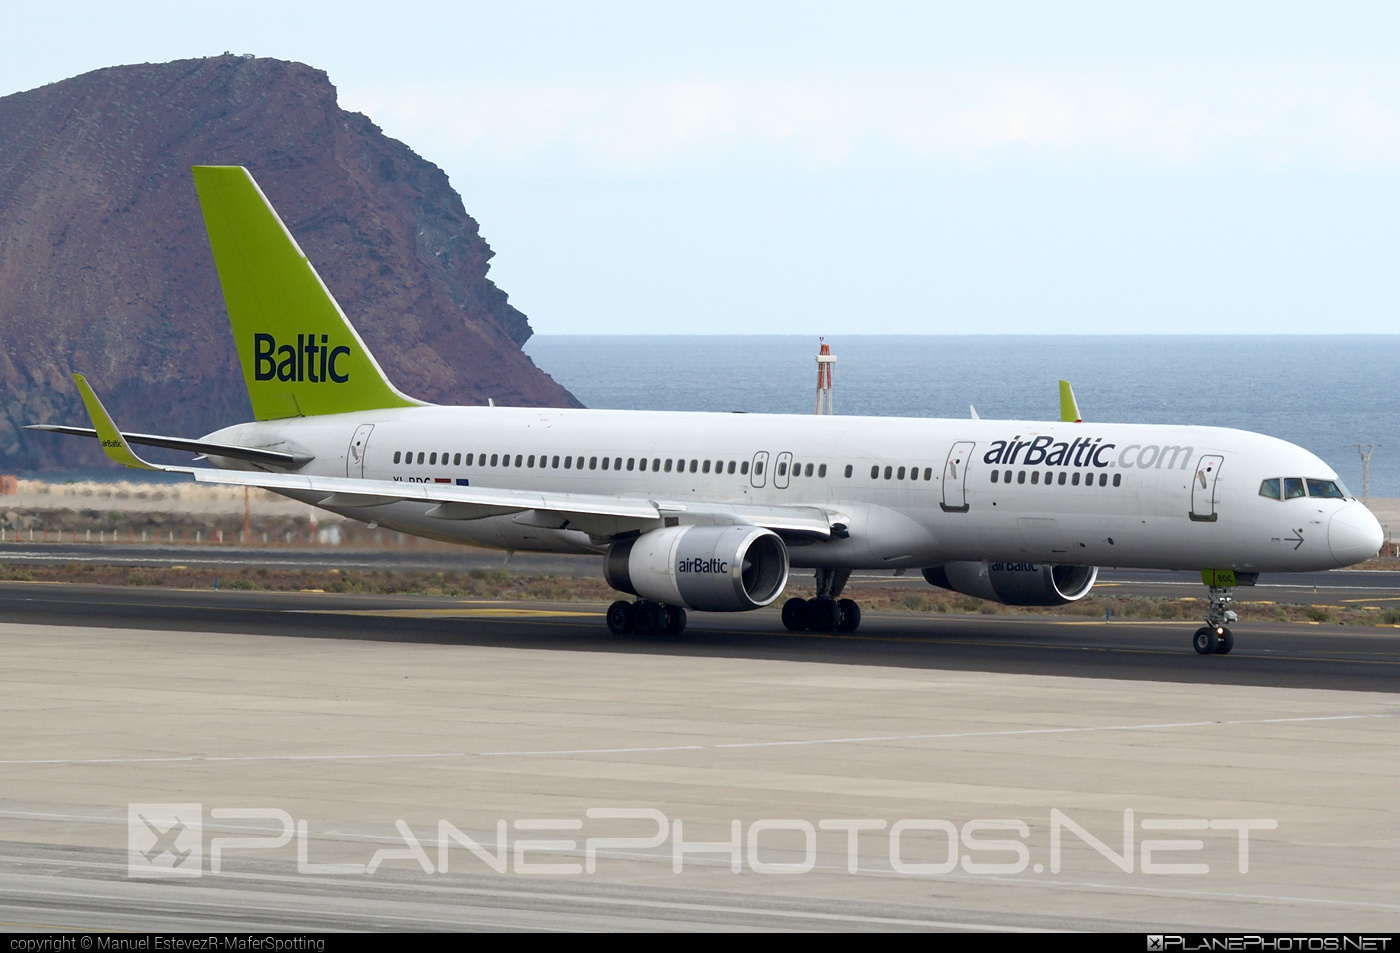 Boeing 757-200 - YL-BDC operated by Air Baltic #airbaltic #b757 #boeing #boeing757